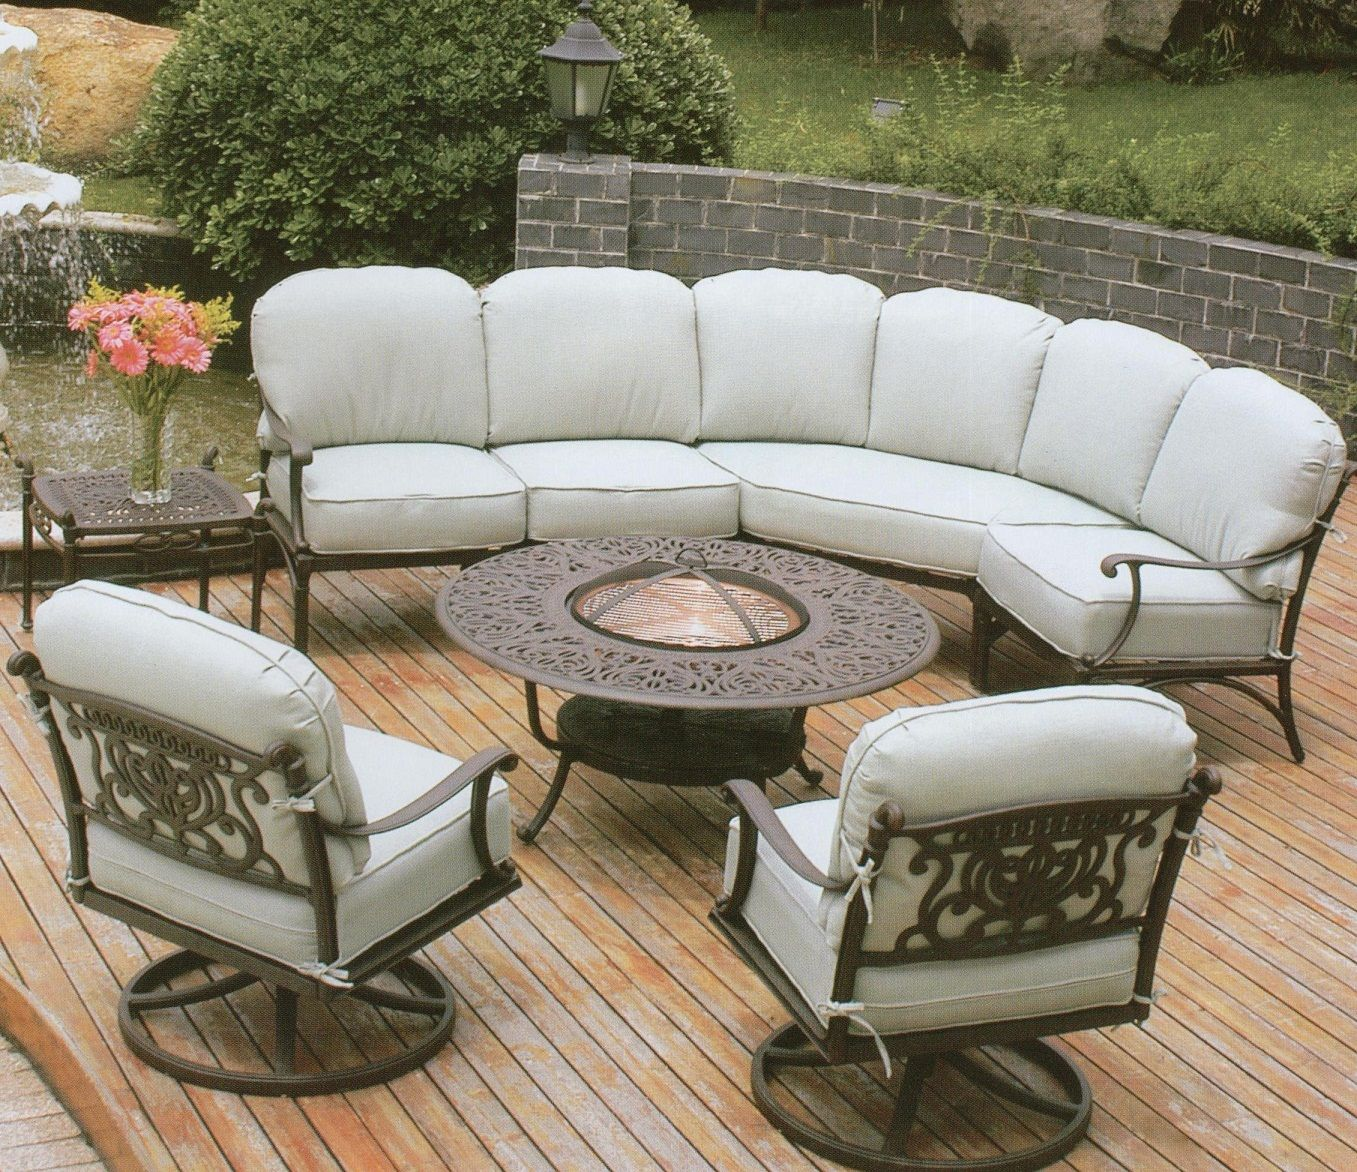 Sears Patio Furniture Clearance Sale